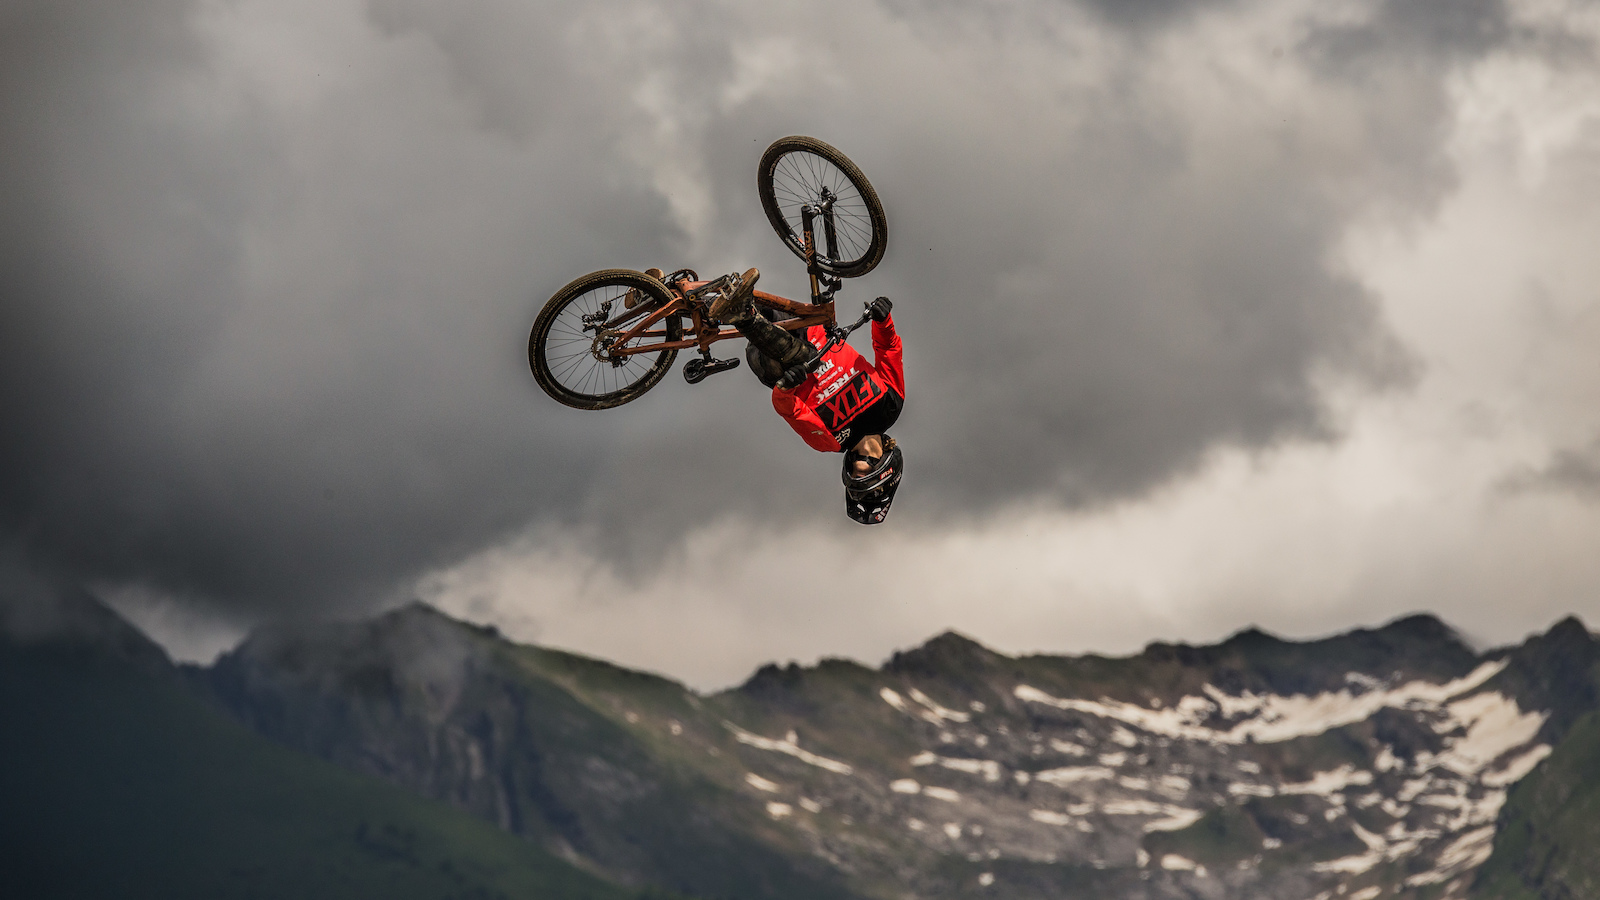 Brett Rheeder,